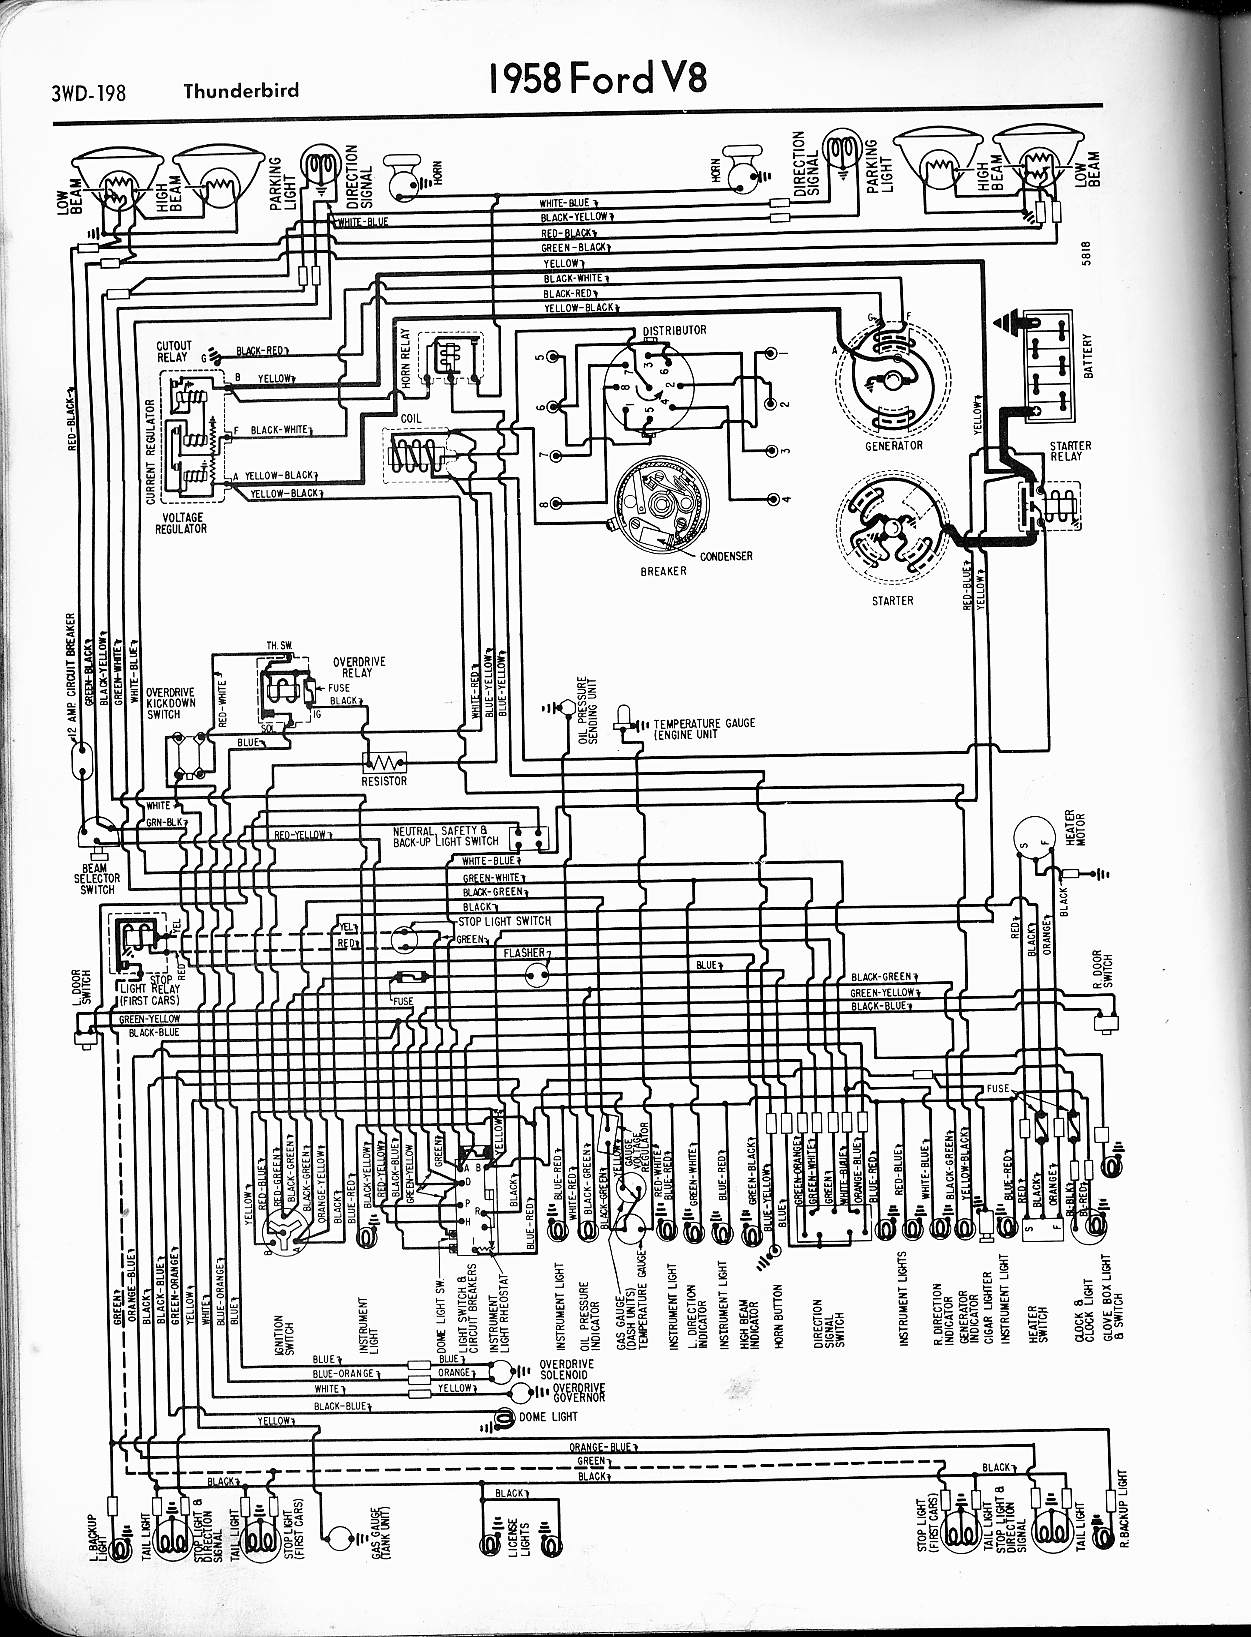 MWire5765 198 57 65 ford wiring diagrams ford car wiring diagrams at bayanpartner.co